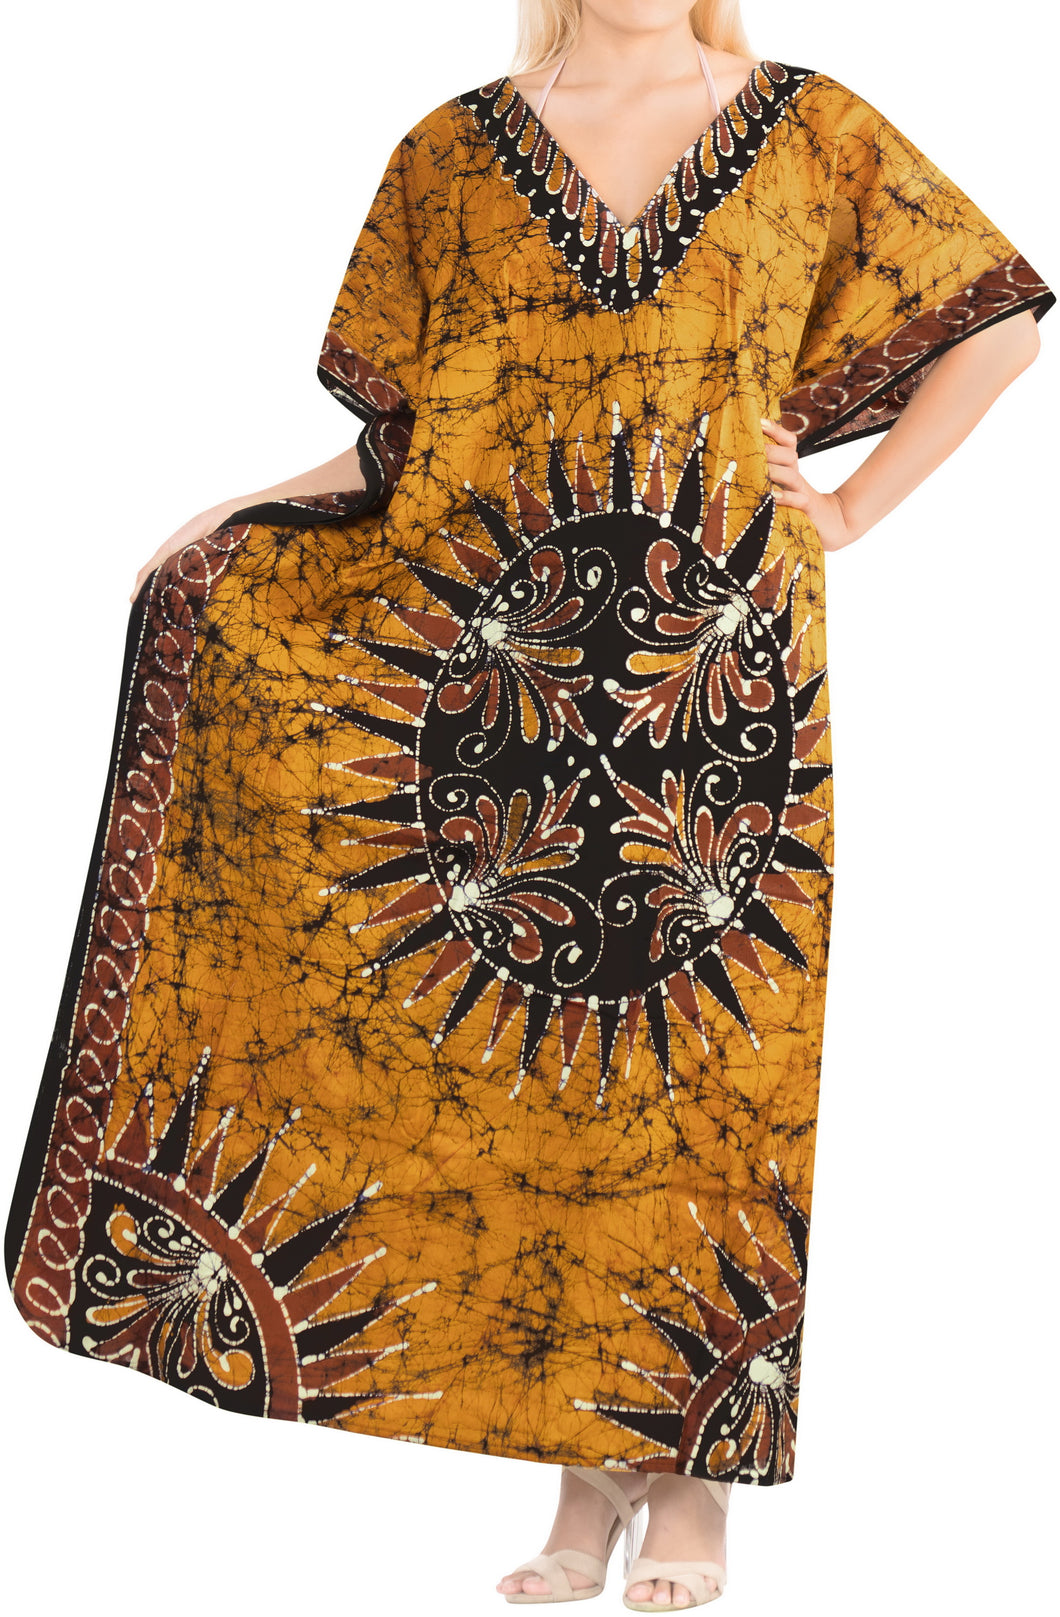 LA LEELA Lounge Cotton Batik Long Caftan Nightgown Women Brown_436 OSFM 14-18W [L-2X]